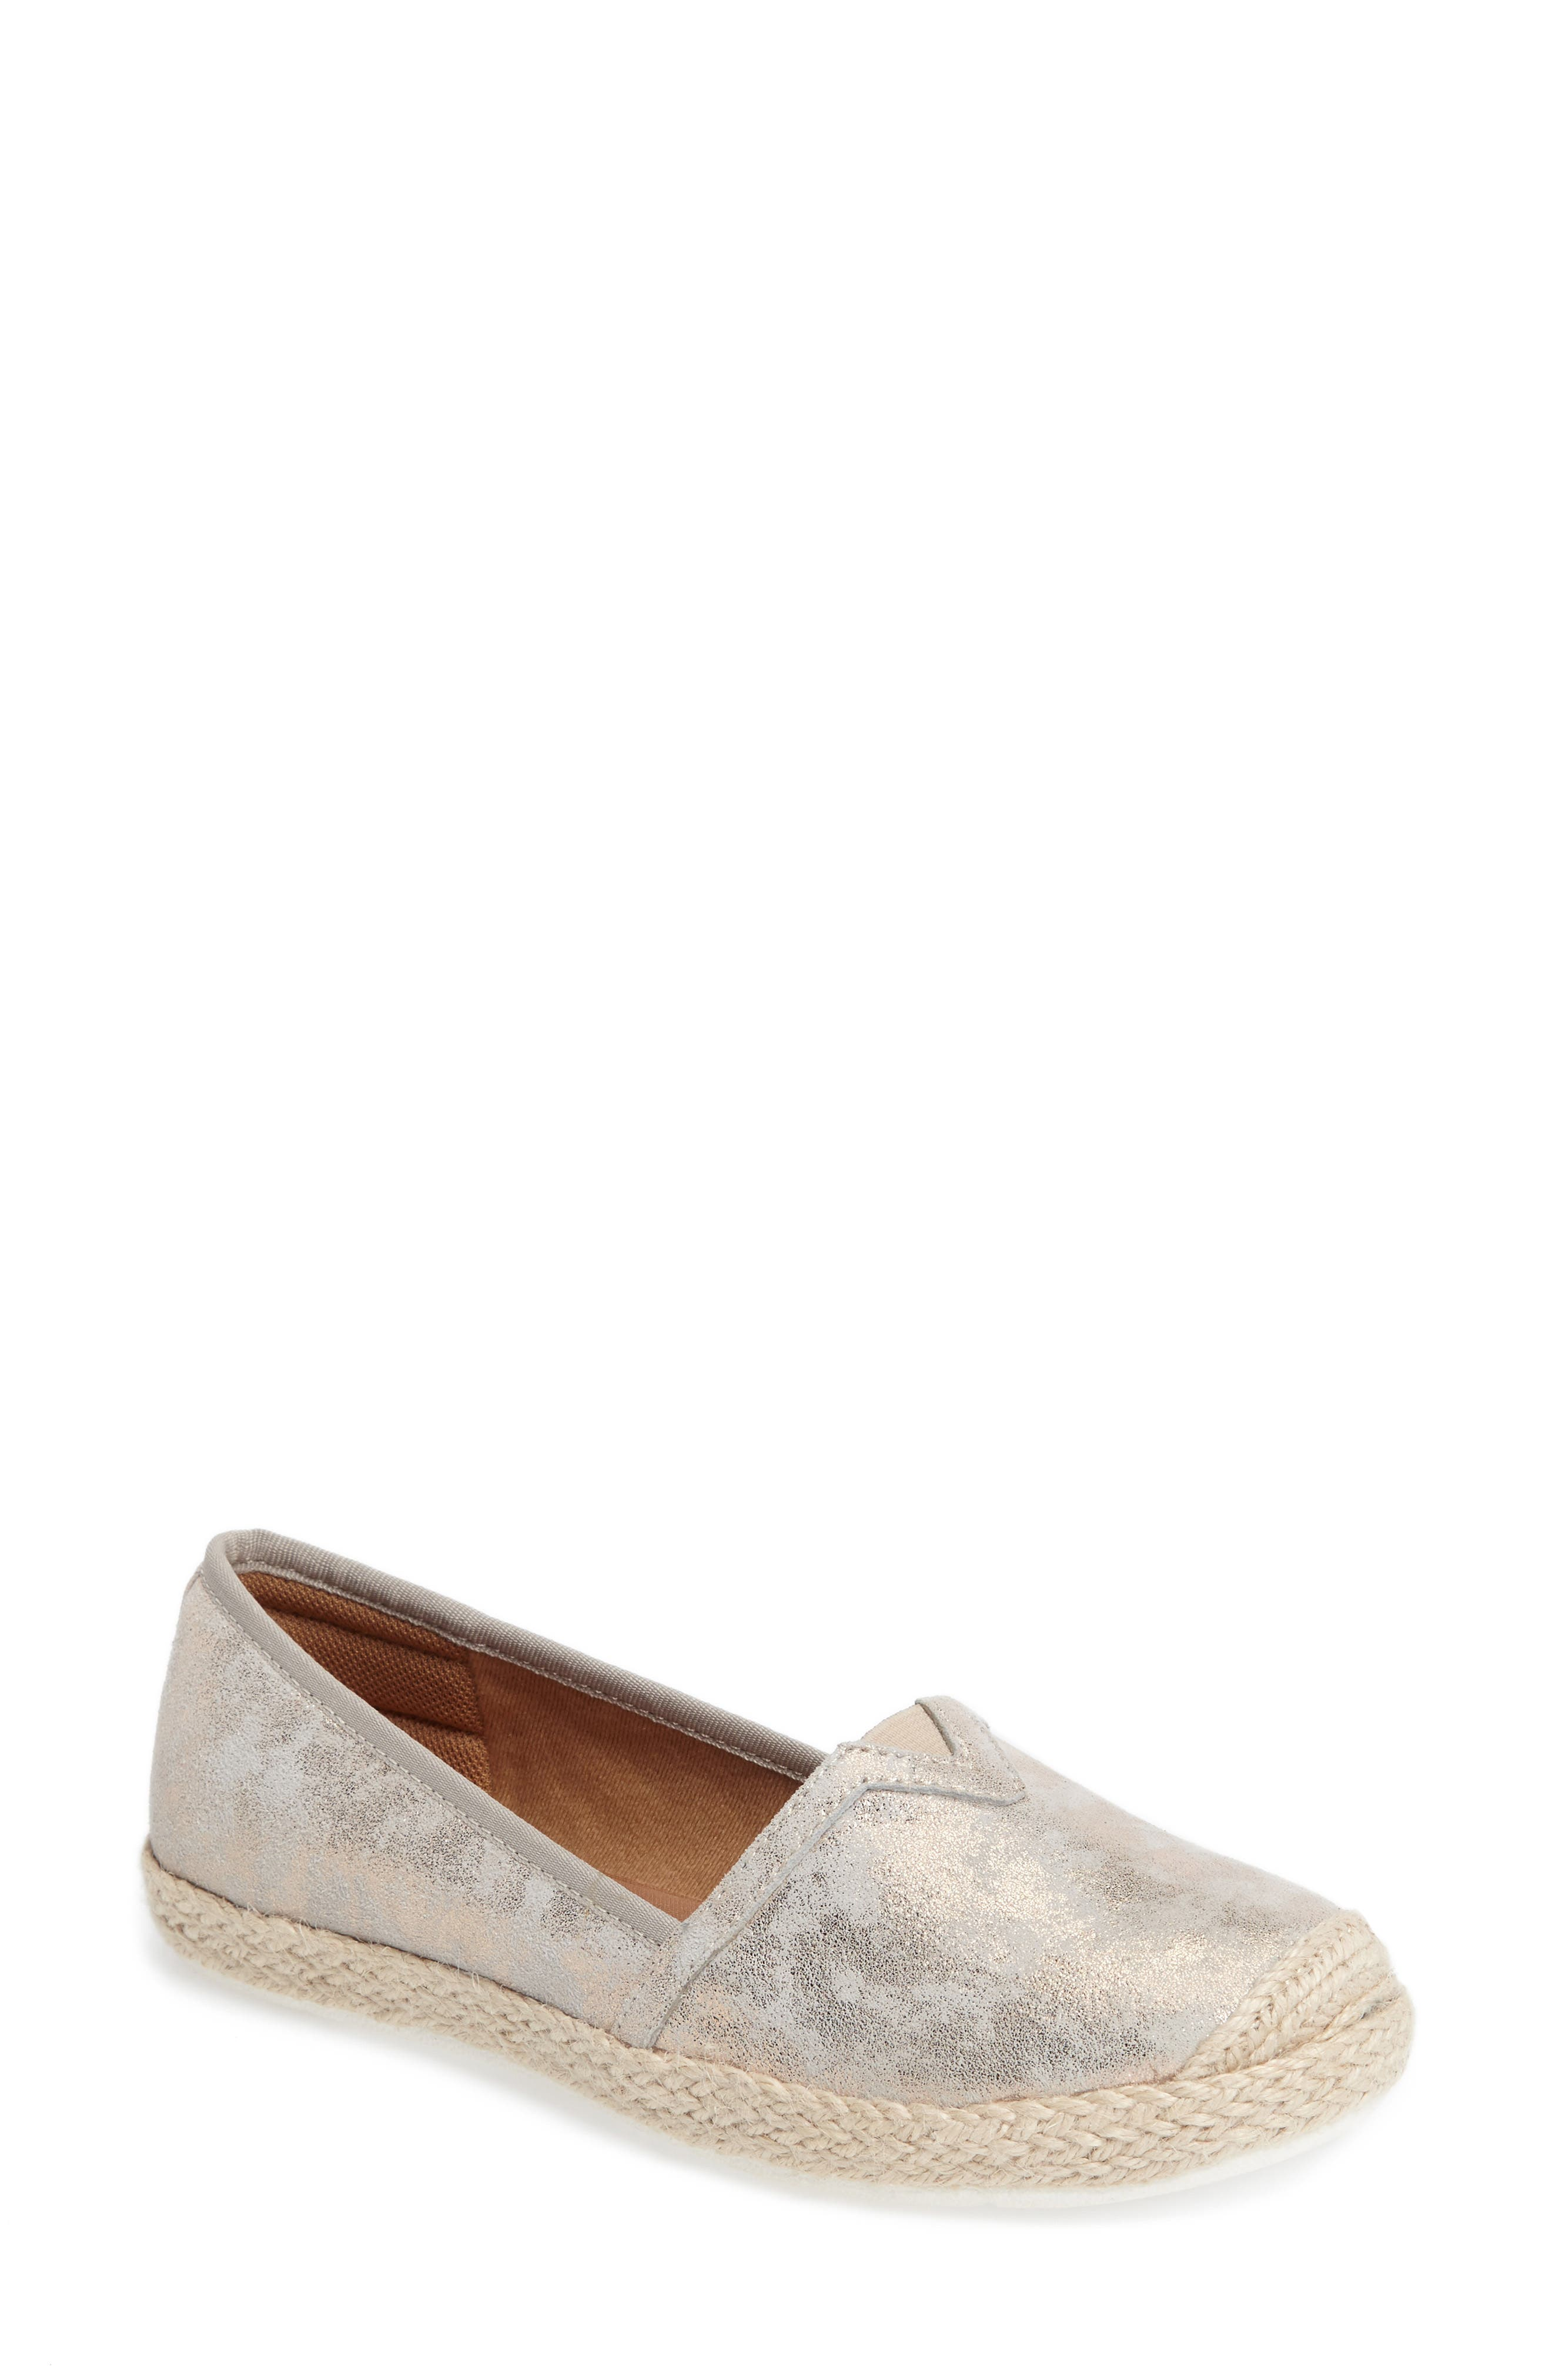 Sheridan Espadrille Flat,                             Main thumbnail 1, color,                             Ivory Suede